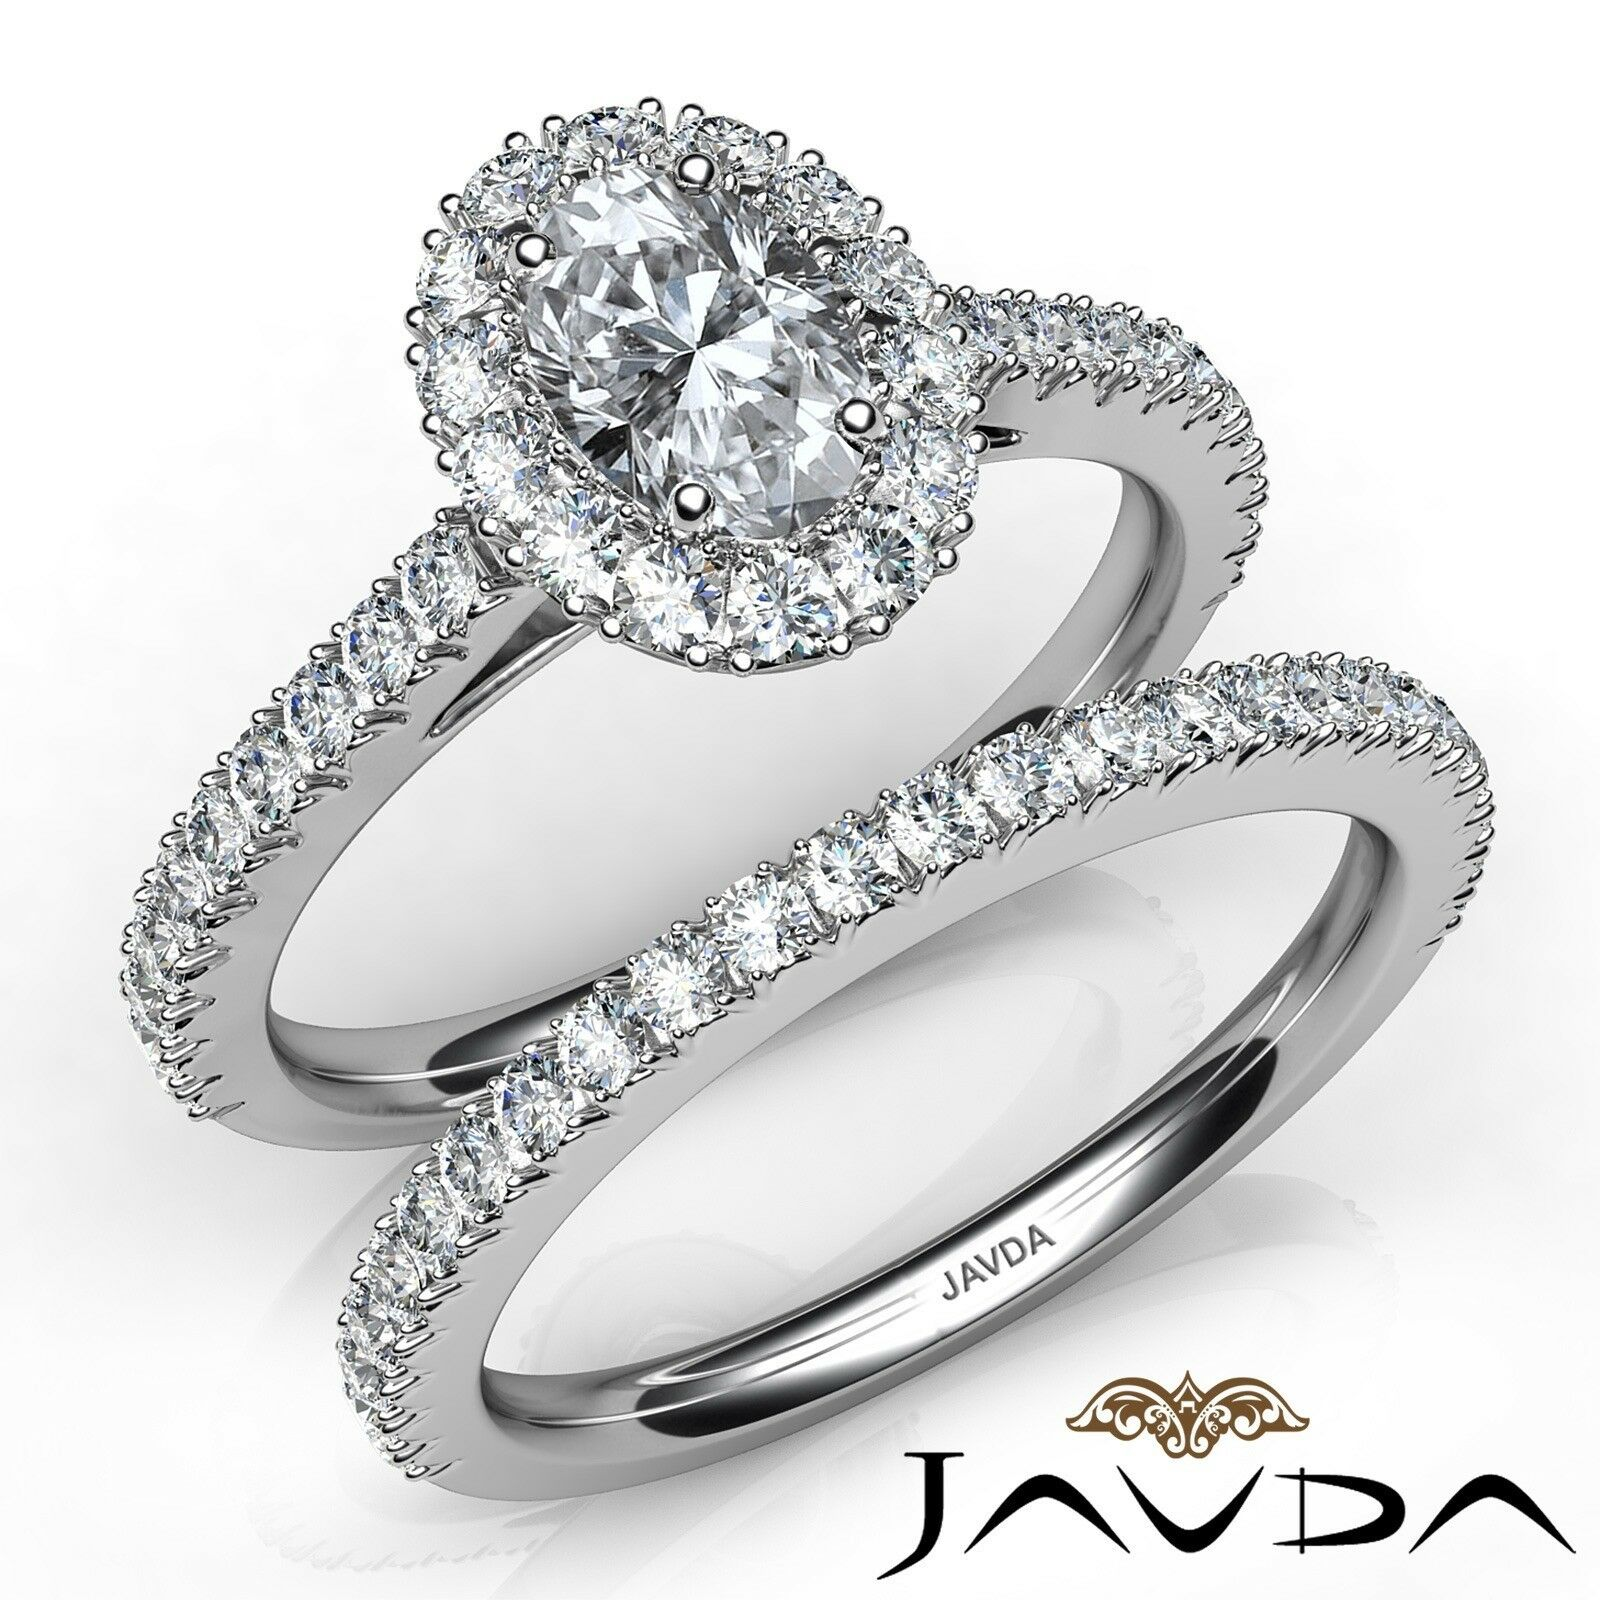 2.2ct Halo Bridal Set French Pave Oval Diamond Engagement Ring GIA F-VVS2 W Gold